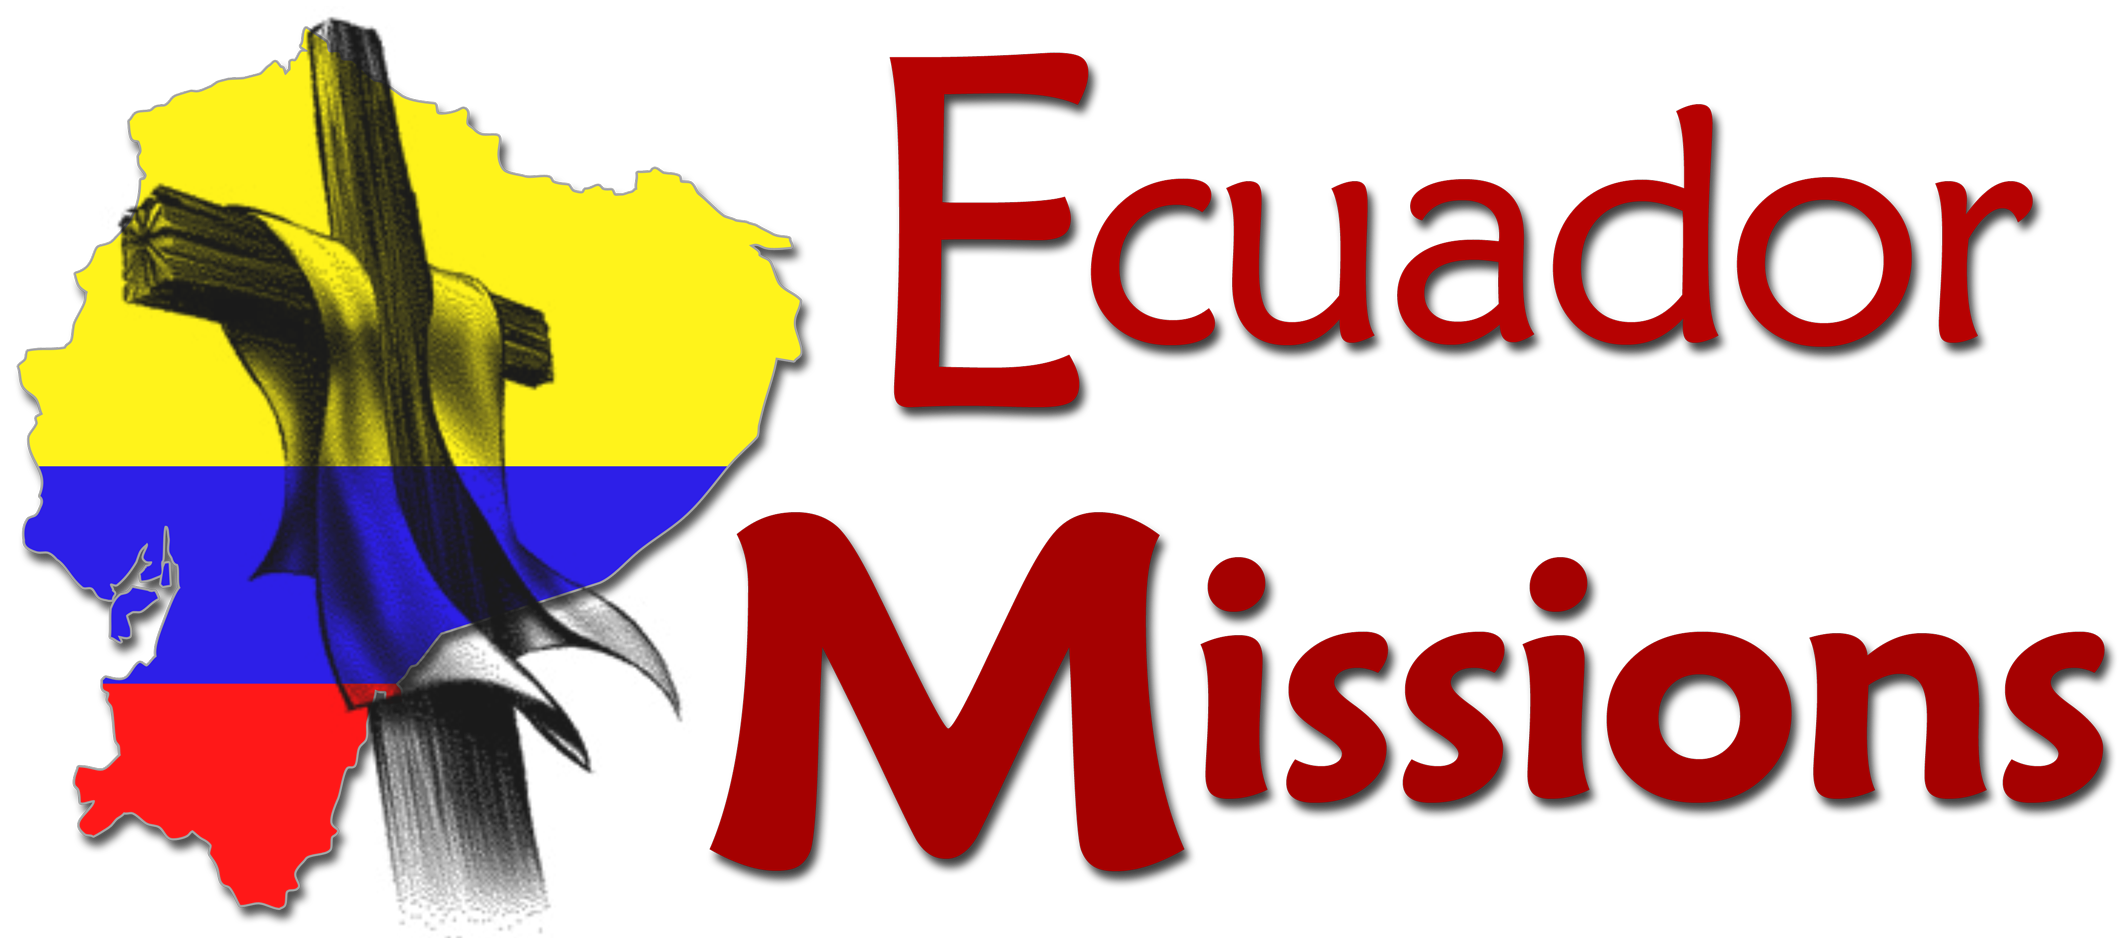 Missions clipart mission accomplished. Ecuador reaching one soul